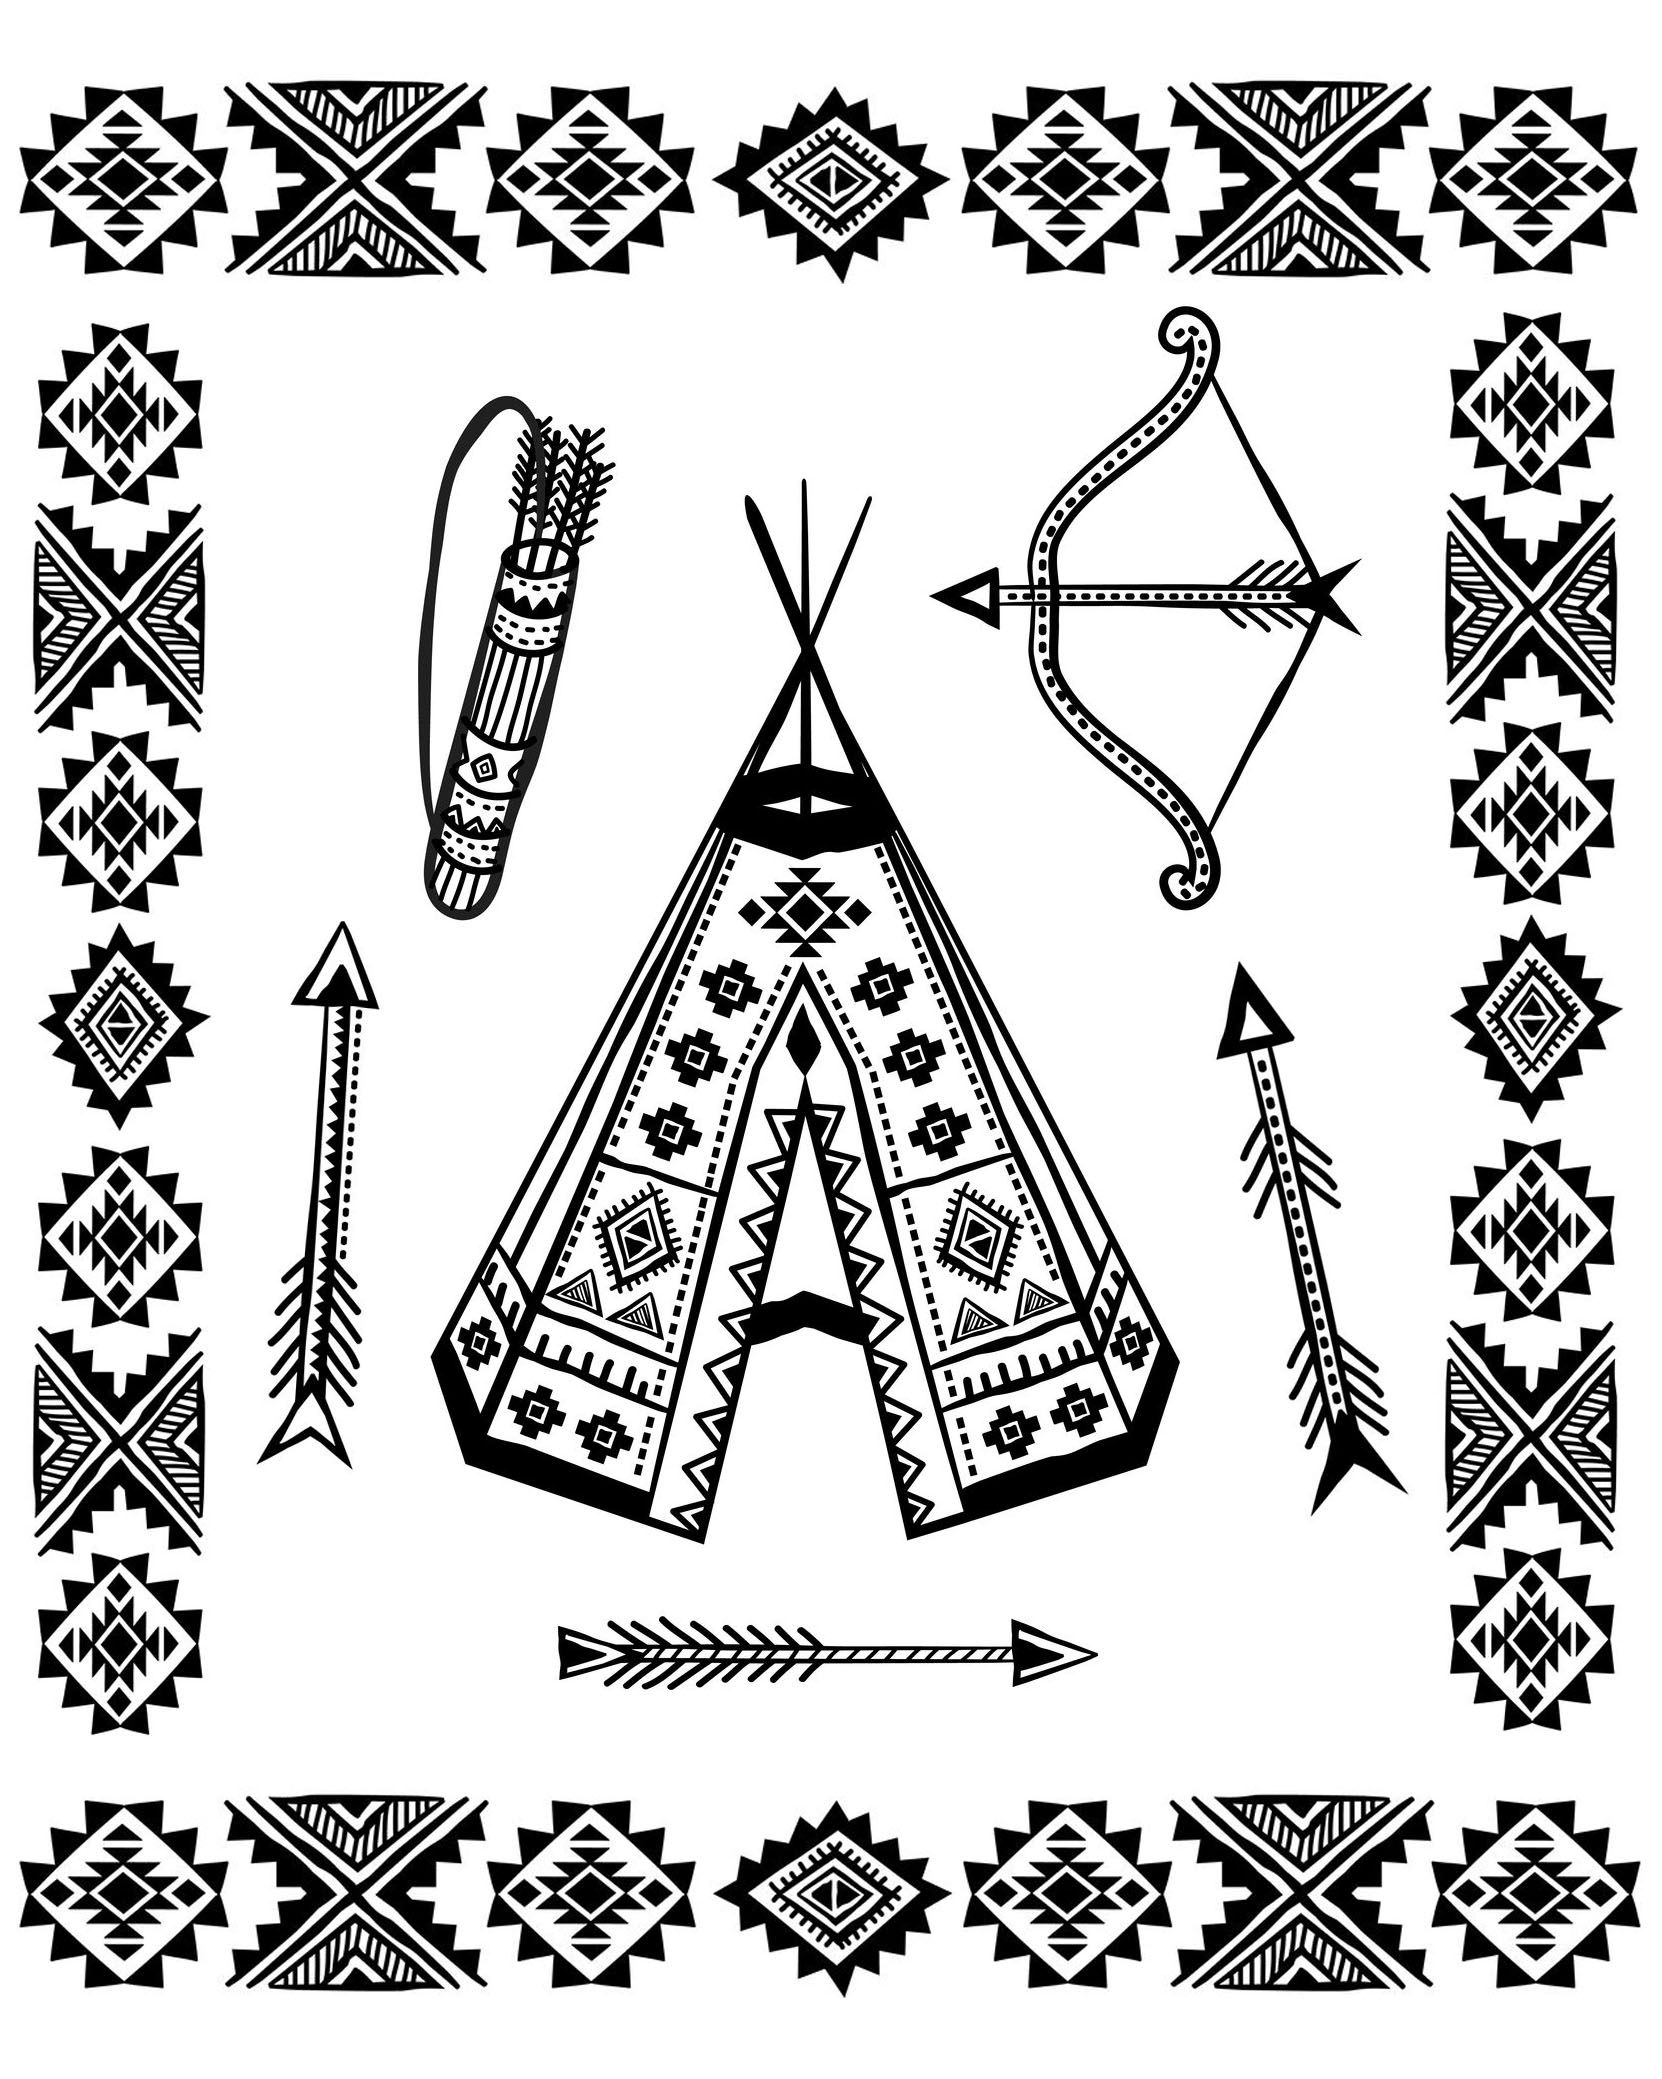 Native American Tipi And Symbols Coloring Page With A Tipi And Other Symbols From The Gallery Nati Native American Symbols American Symbols Coloring Pages